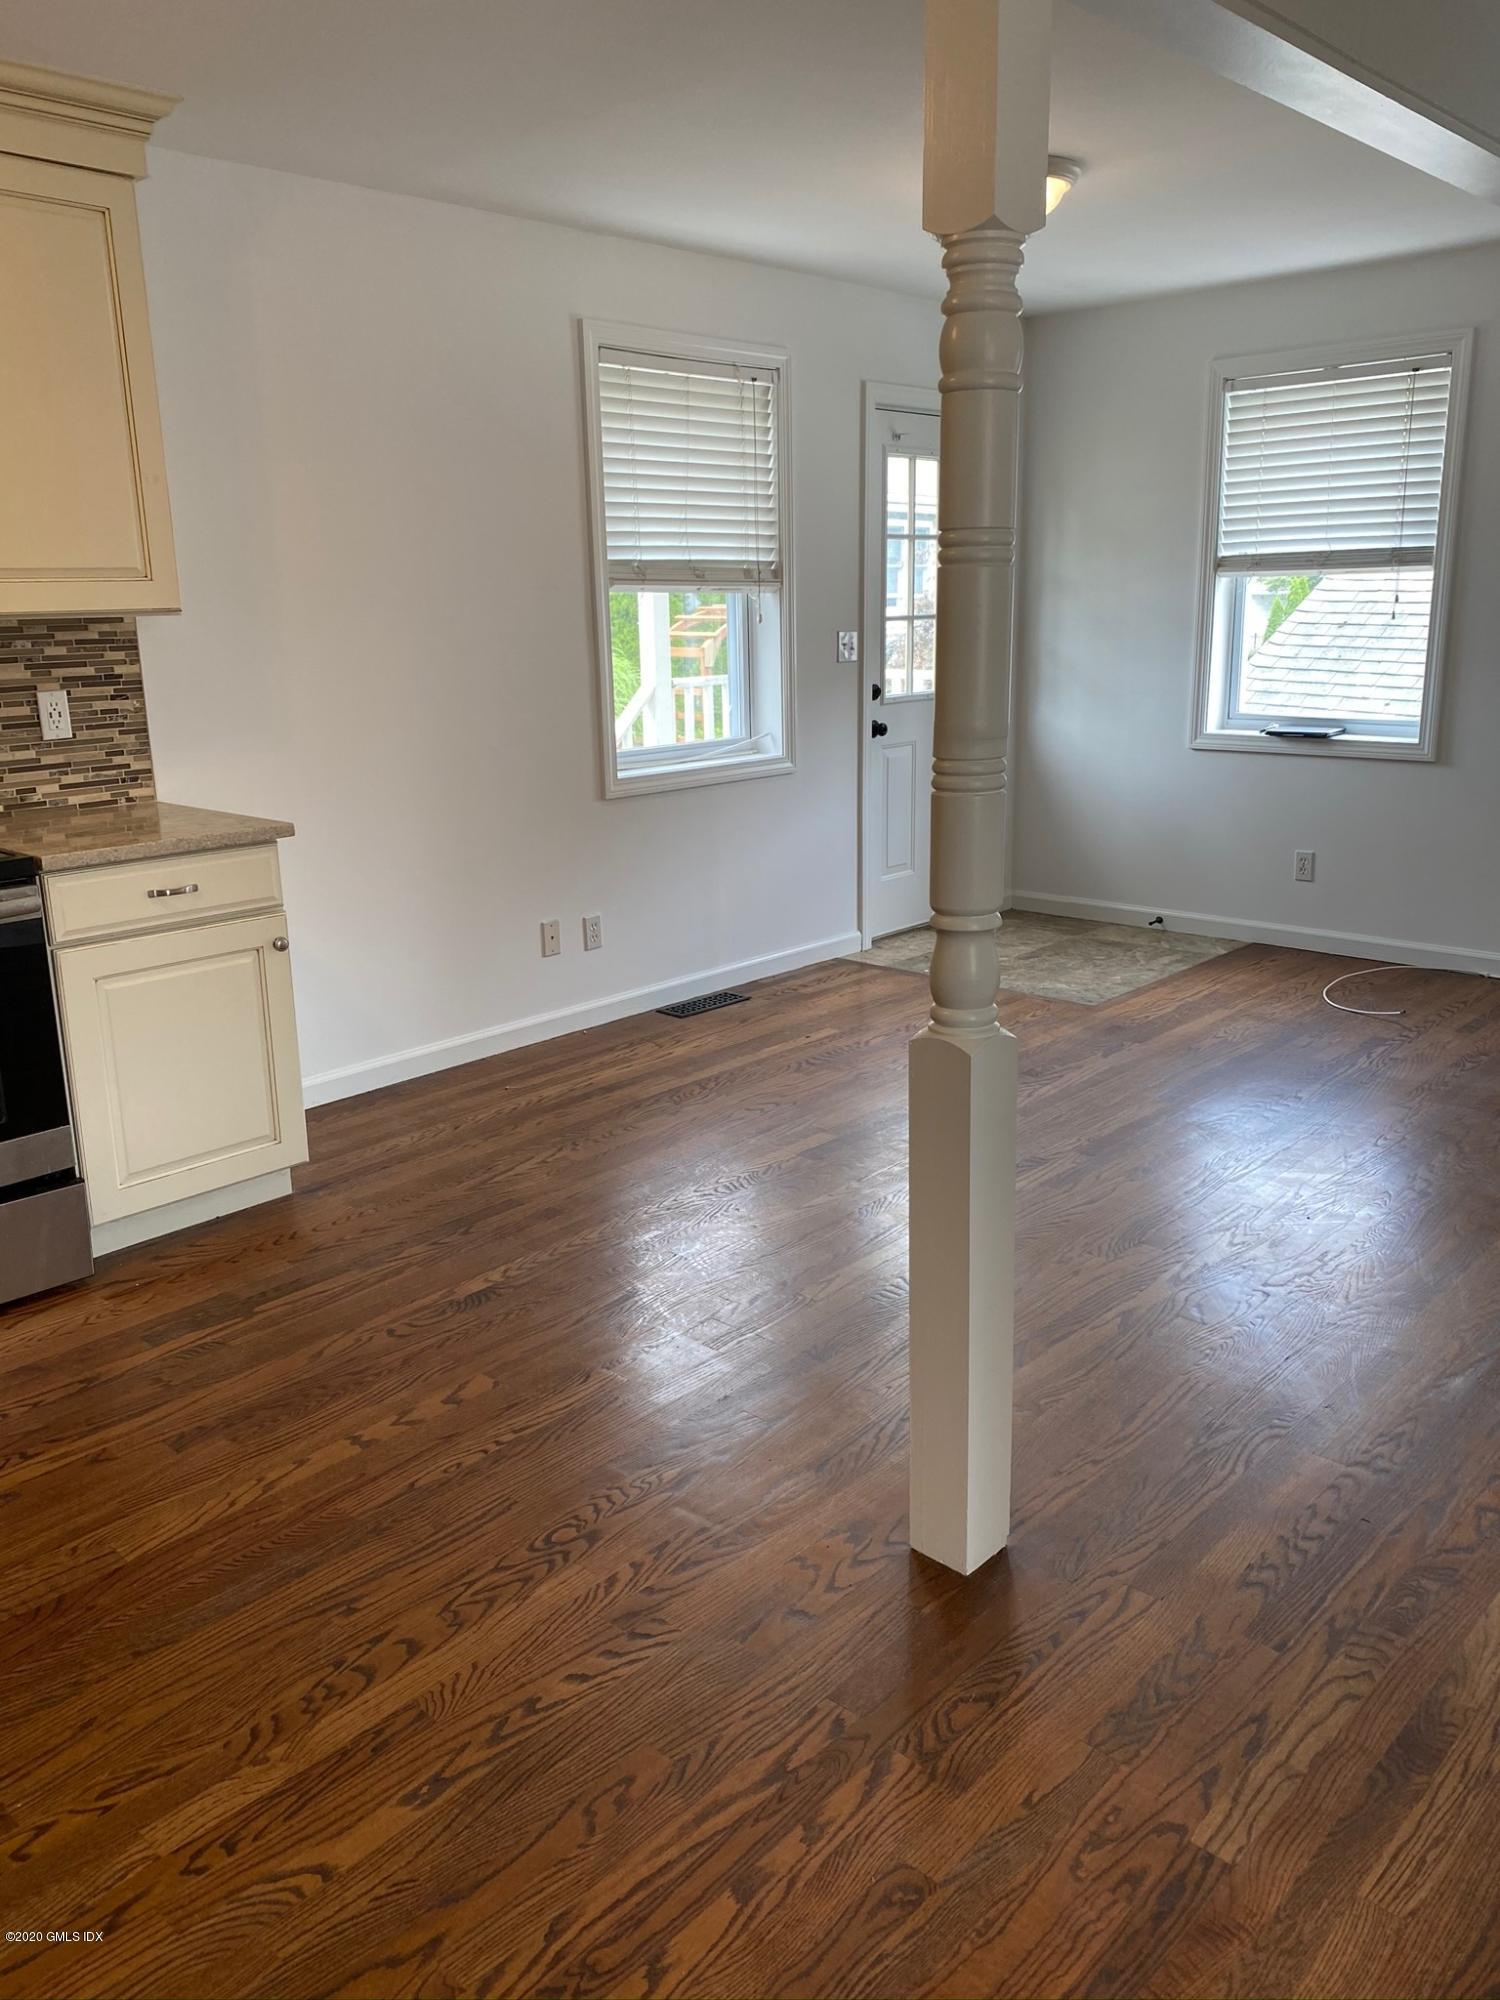 71 Old Field Point Road, Greenwich, Connecticut 06830, 2 Bedrooms Bedrooms, ,1 BathroomBathrooms,Multi-family - 2 units,For Rent,Old Field Point,110740